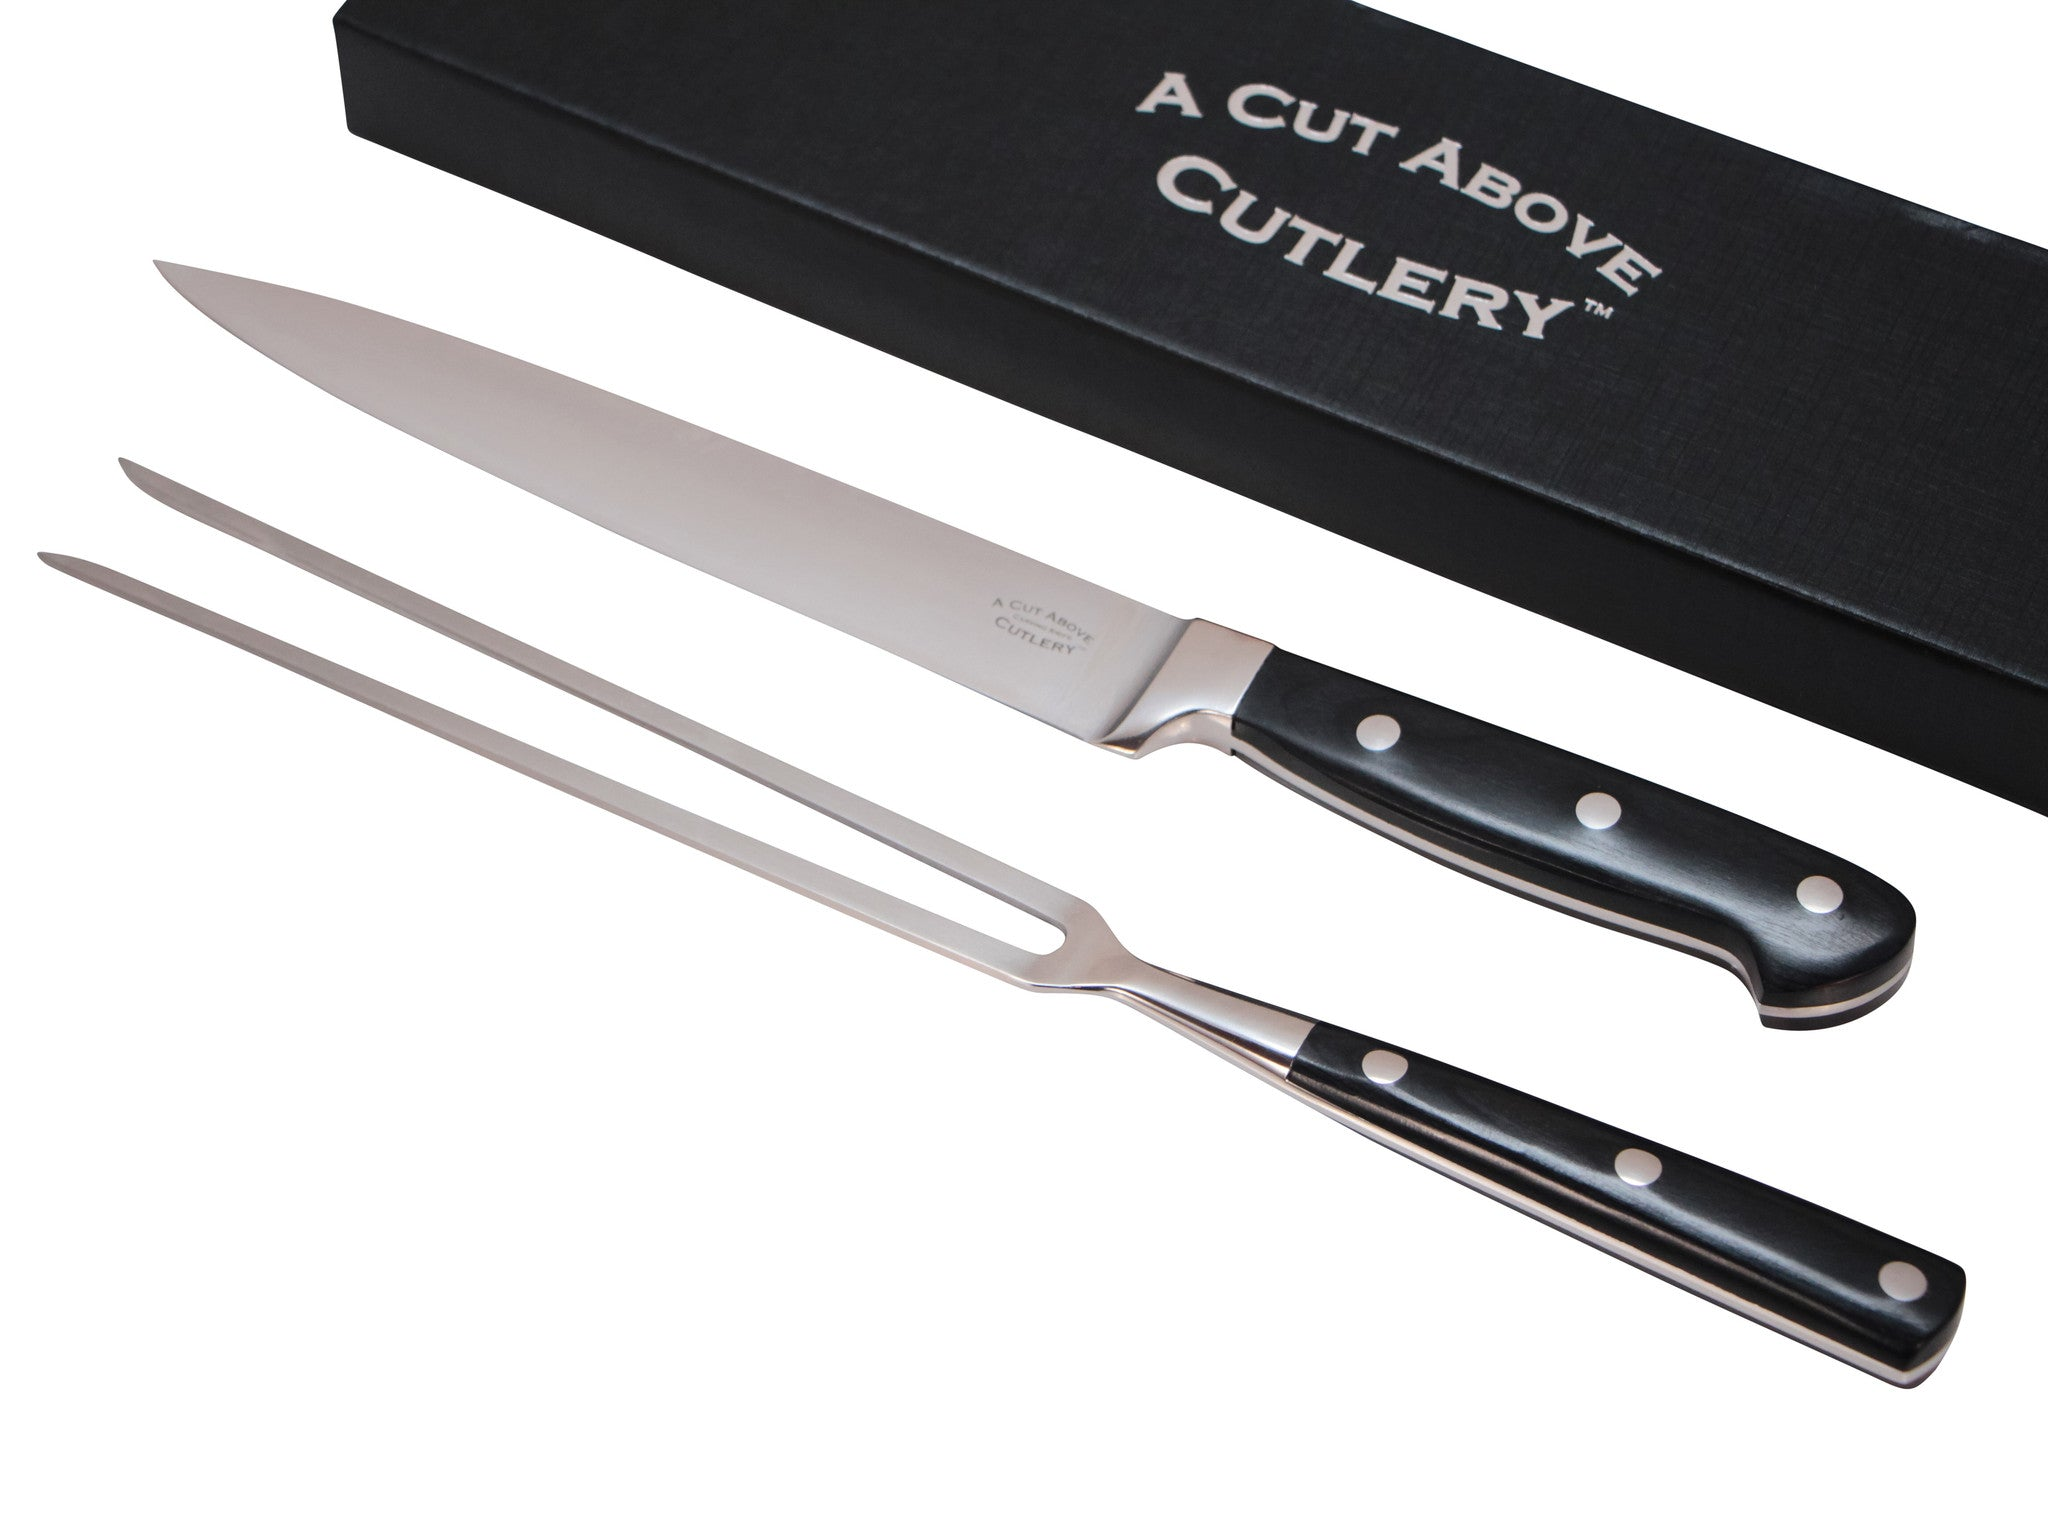 A Cut Above Cutlery Carving Knife Set, Extended Fork Holds the Largest Turkey, Roast or Ham Securely, 8 Inch Stainless Steel Blade Slices Cleanly, Won't Shred- Carve Your Dinner Like A Pro Chef